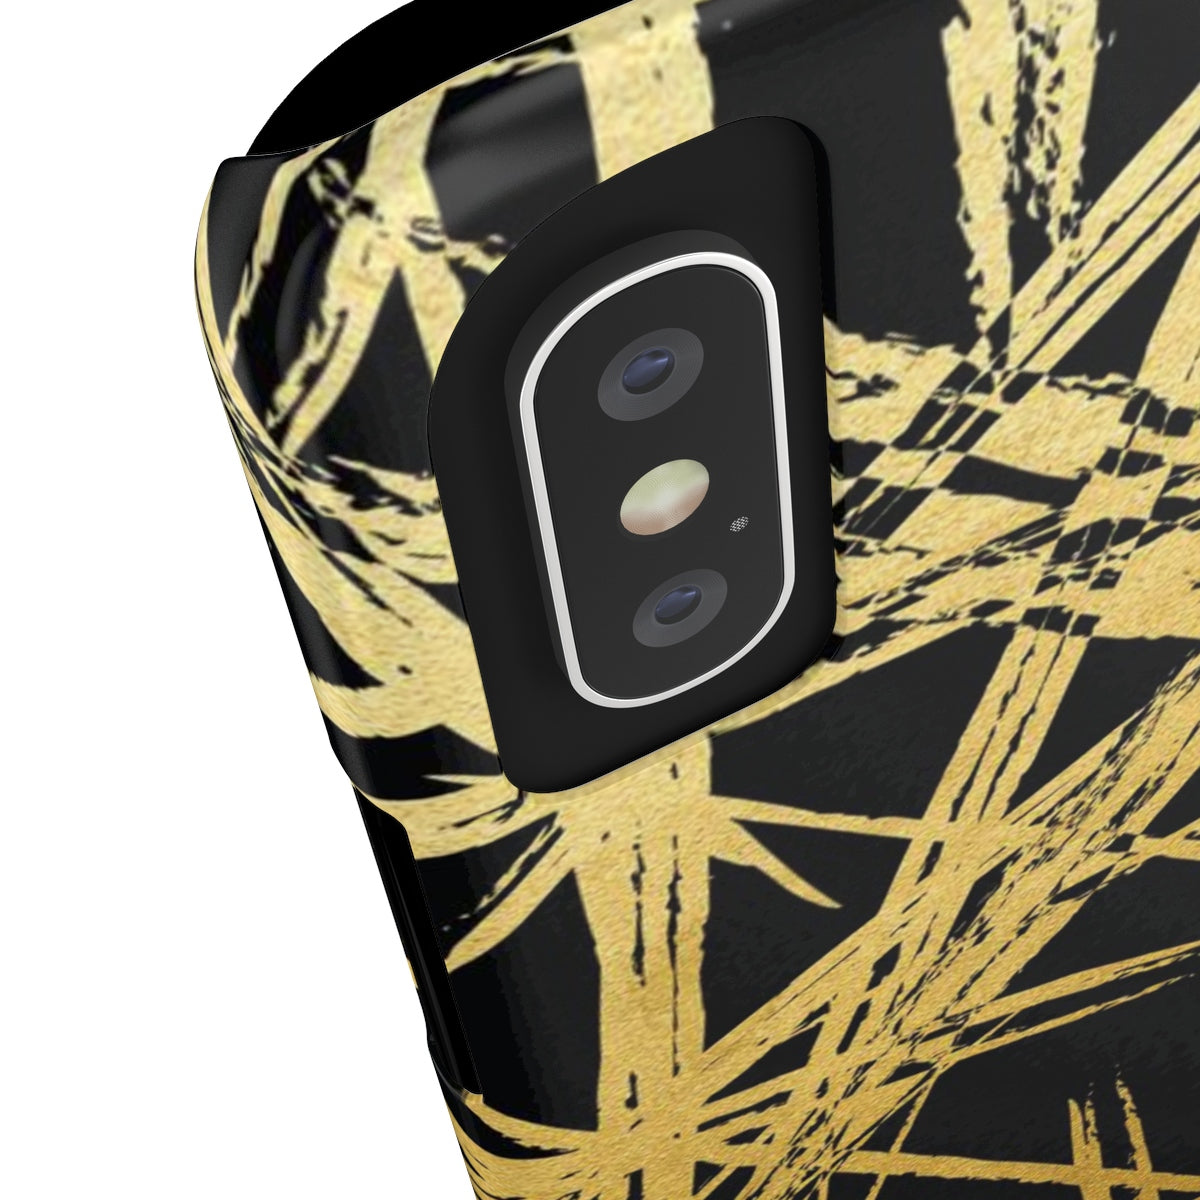 Gold Strokes Black Sleek and Chic Phone Case